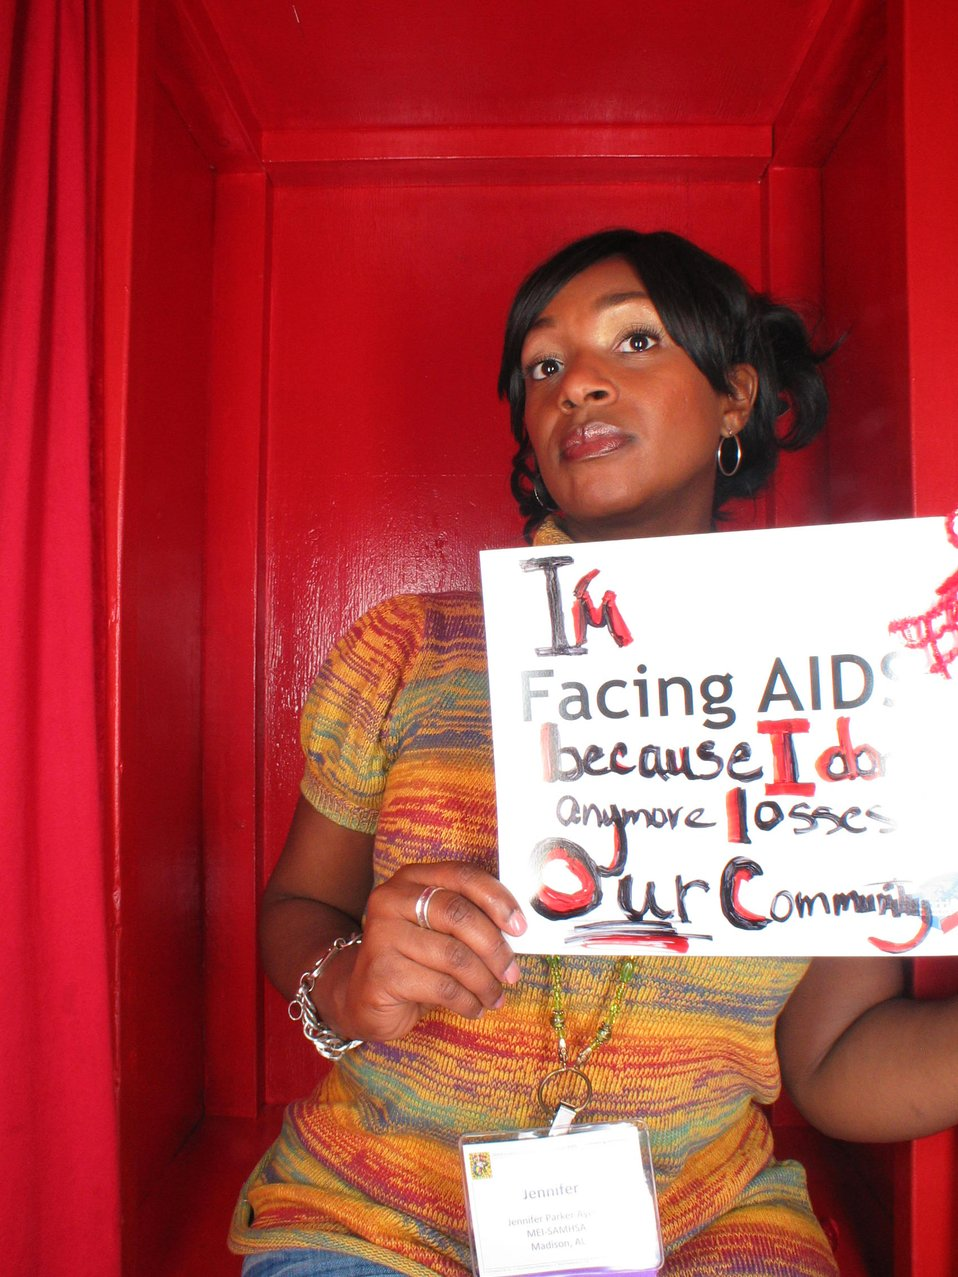 I'm Facing AIDS because I don't want anymore losses in our community.